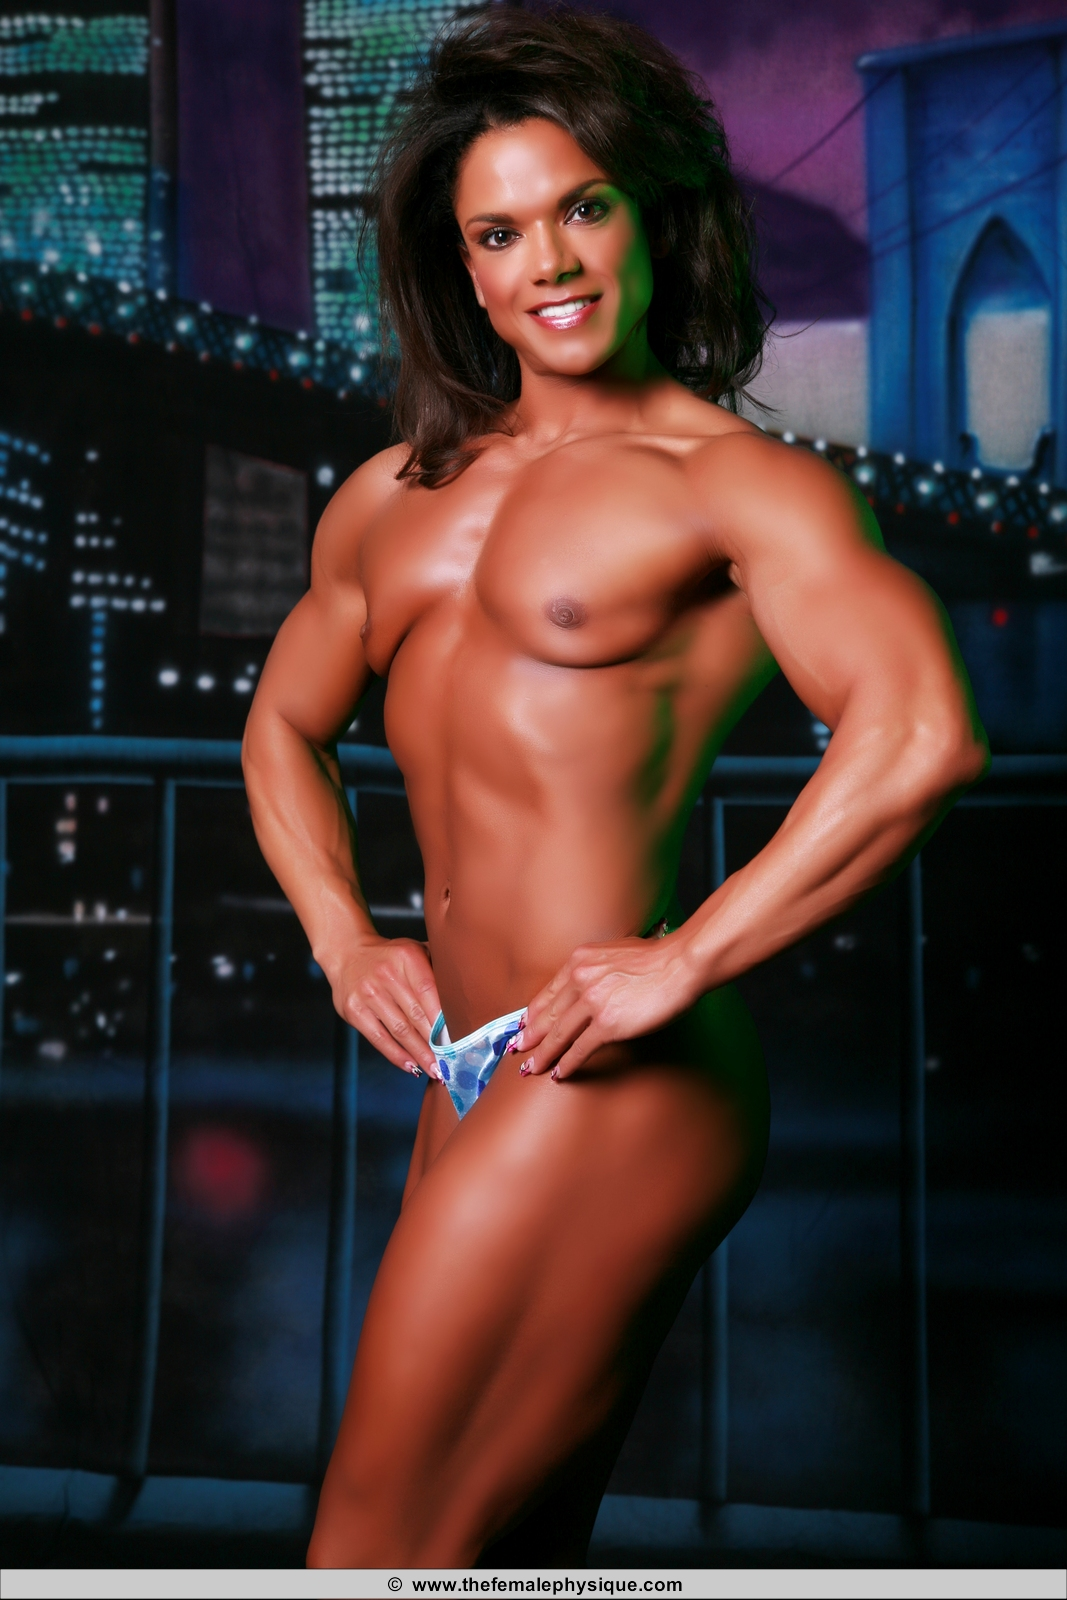 Women bodybuilder 3d art nude nsfw clips